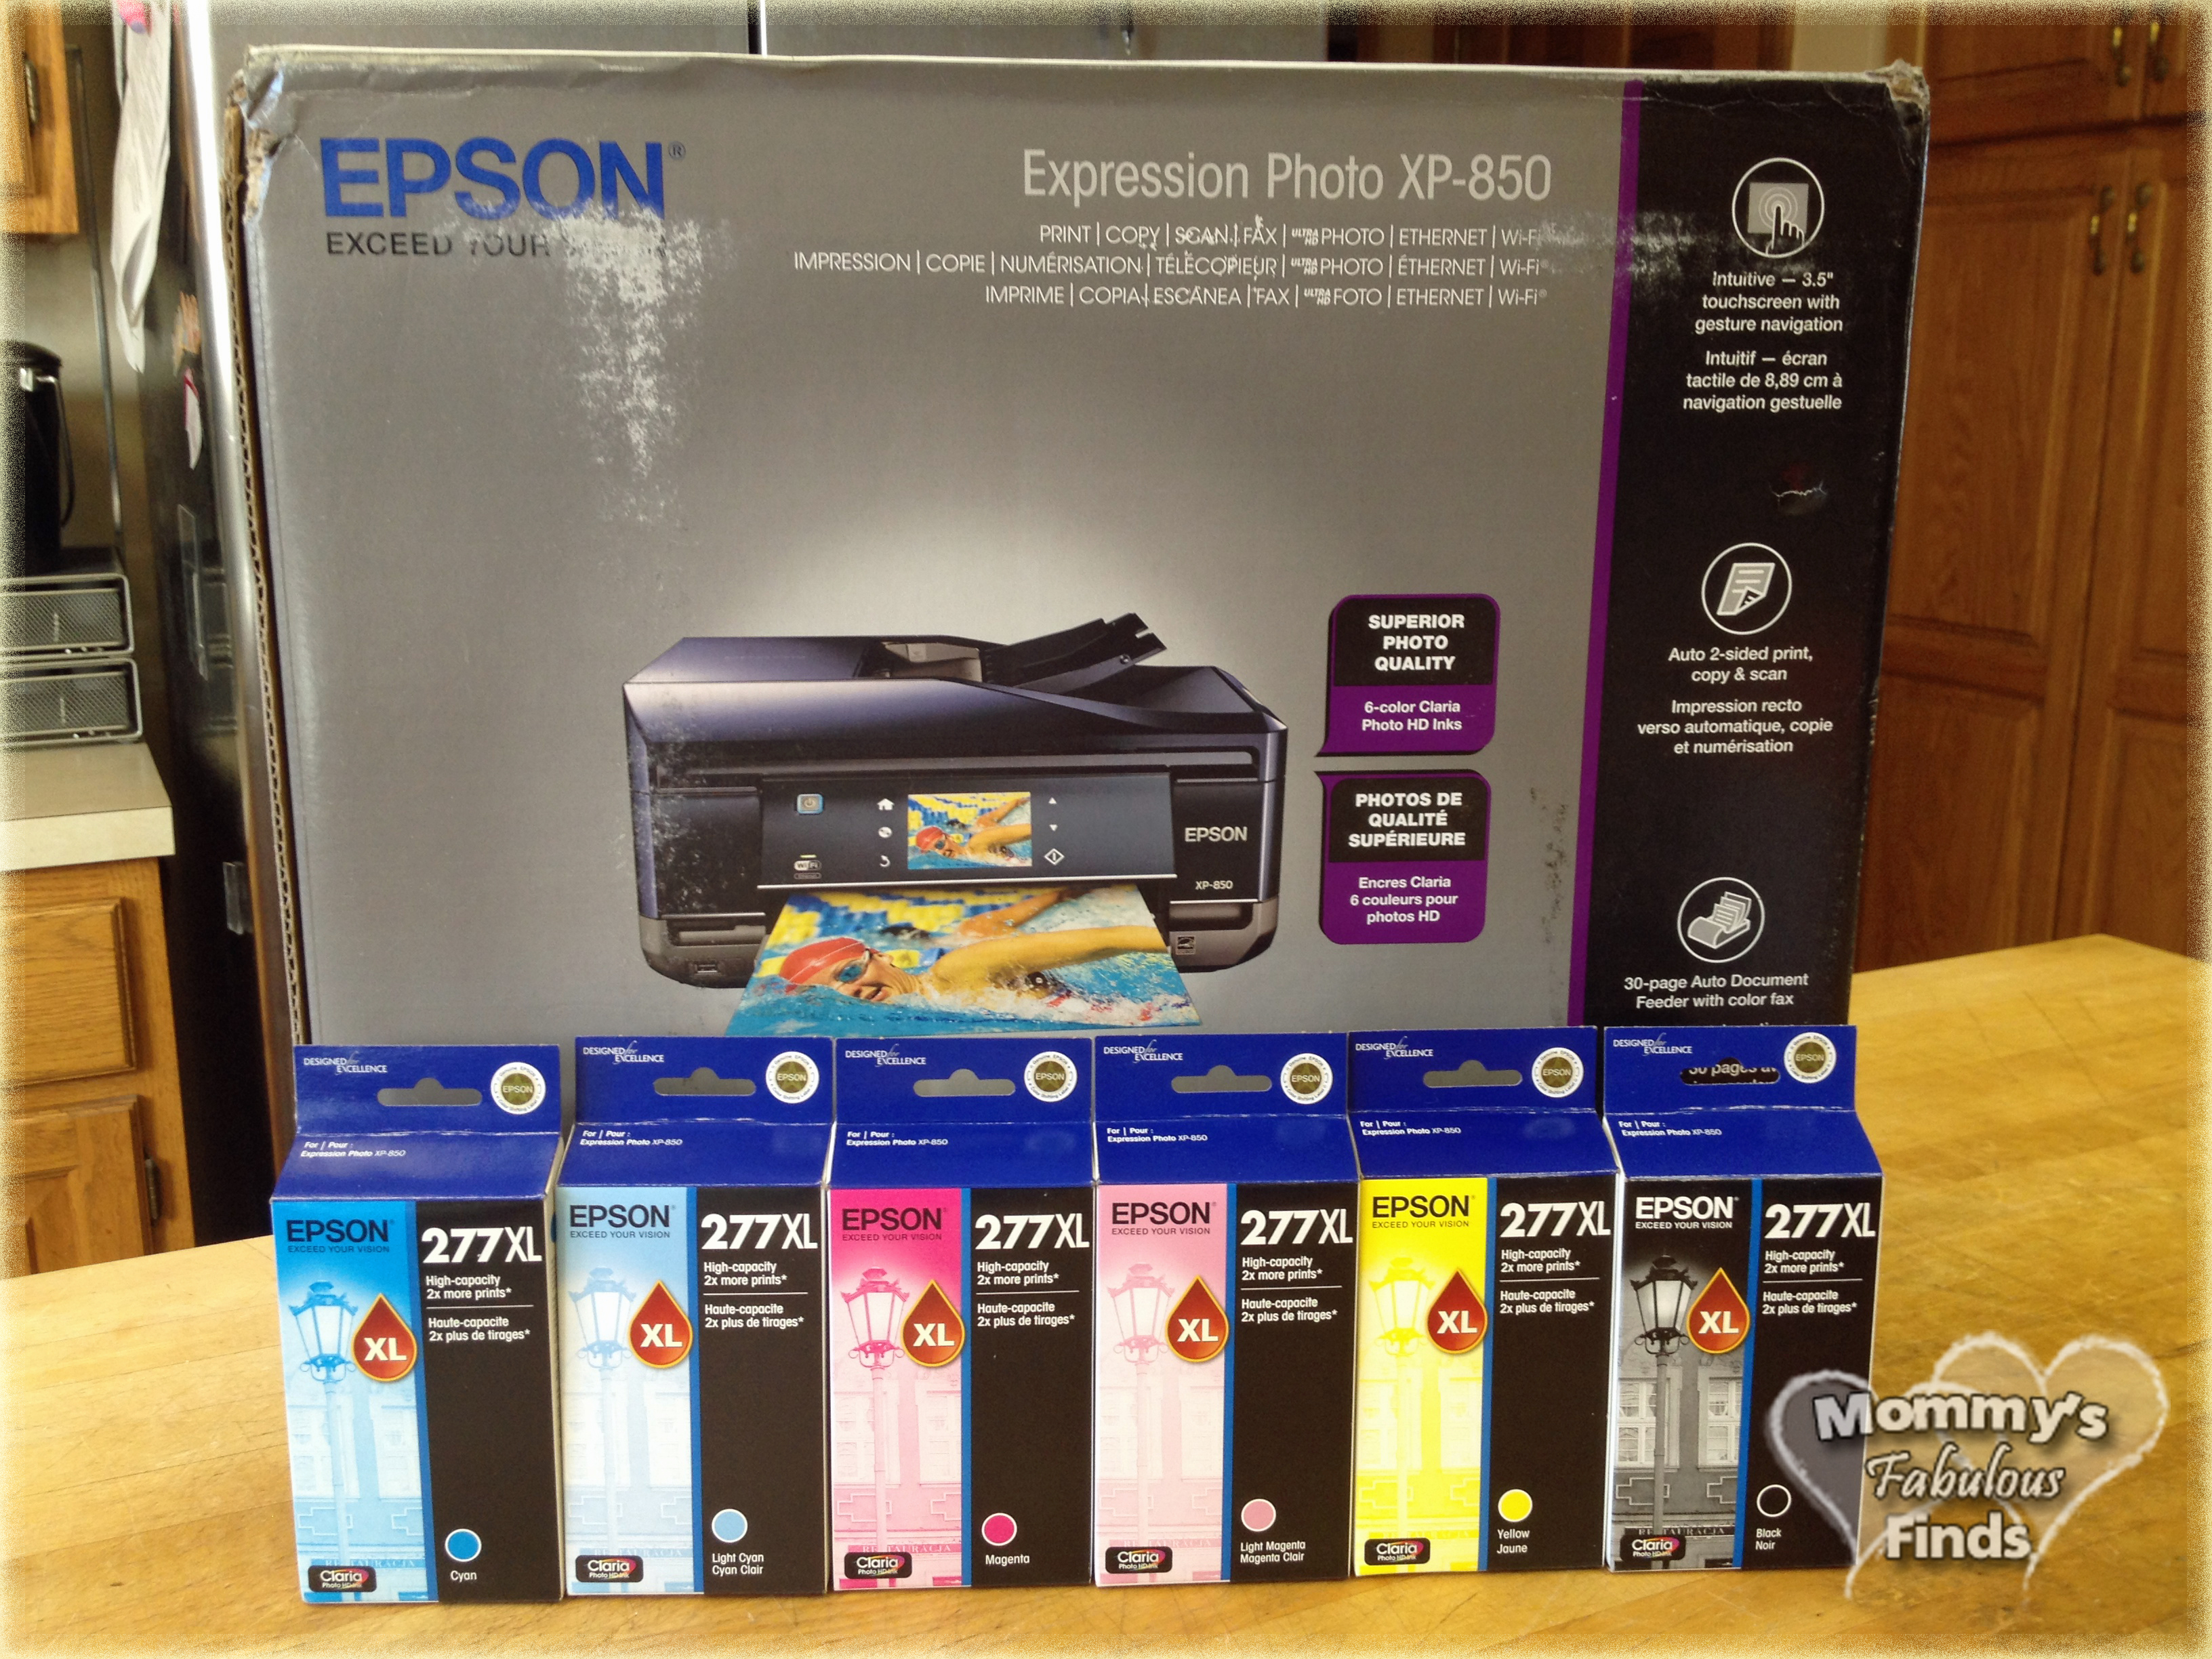 Epson Expression Photo XP-850 Small-in-One Printer Review